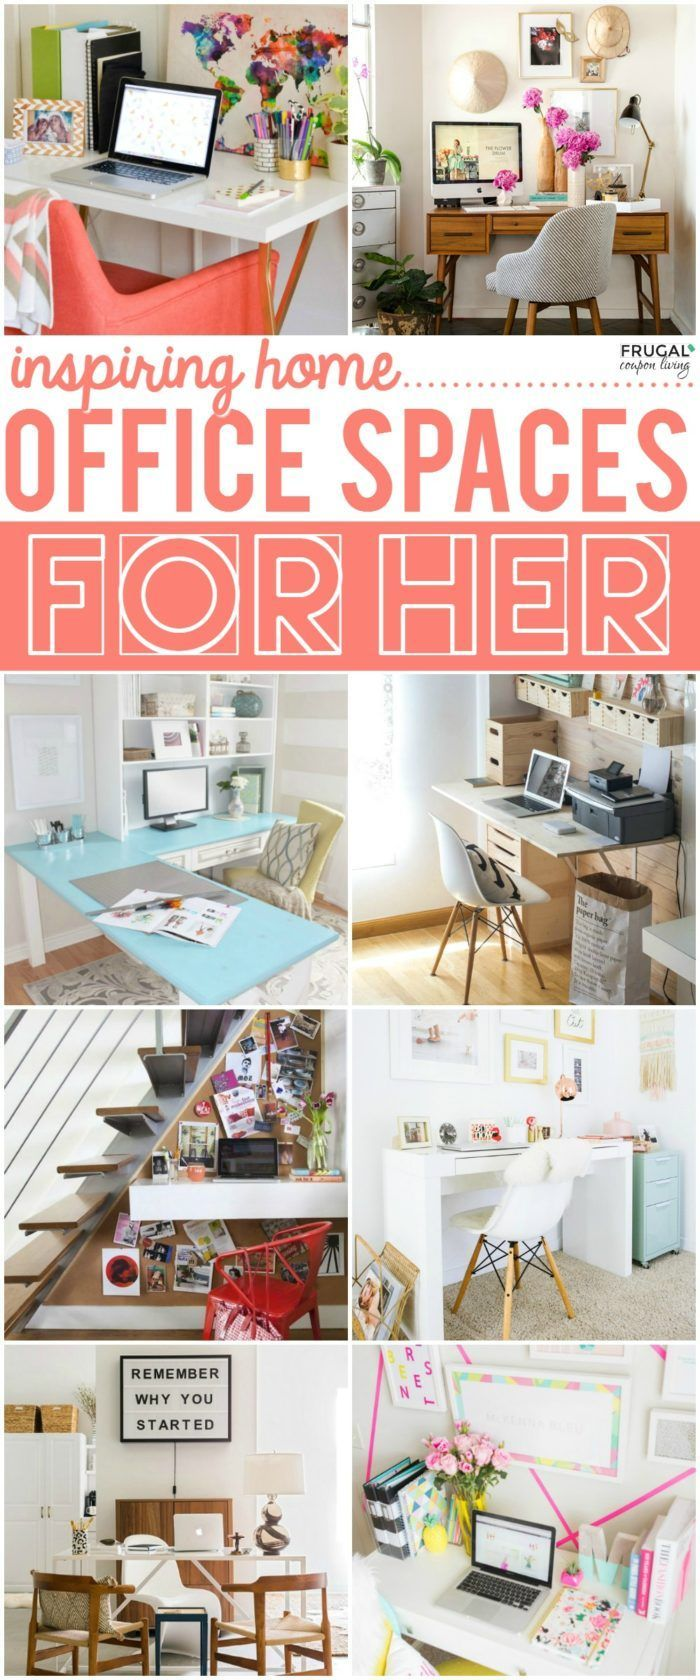 Best Ideas For Diy Crafts : Inspiring Home Office Decor Ideas for